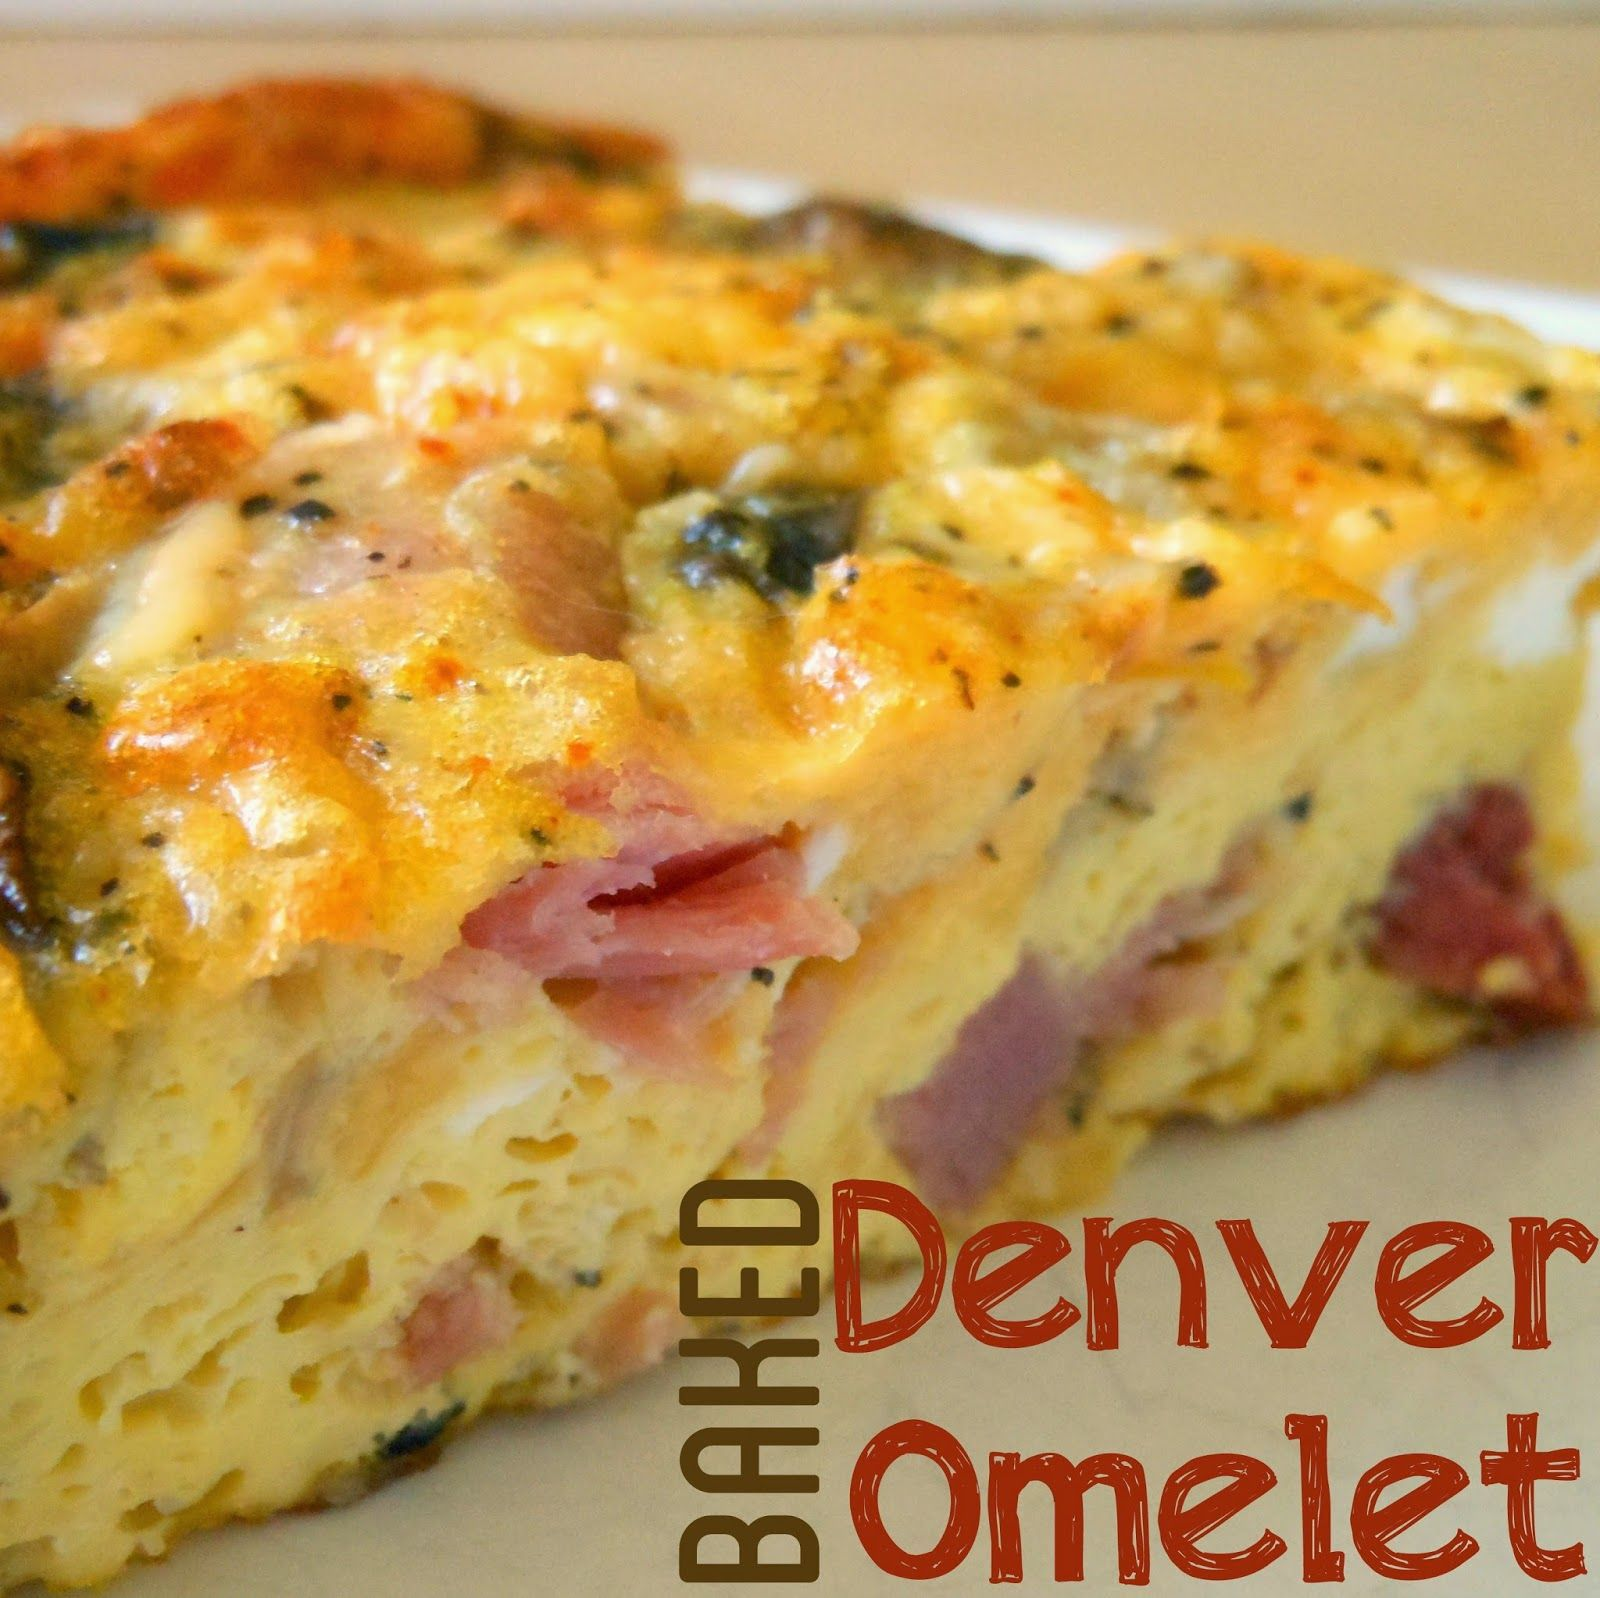 This Baked Denver Omelet Was Easy And Great For Leftovers